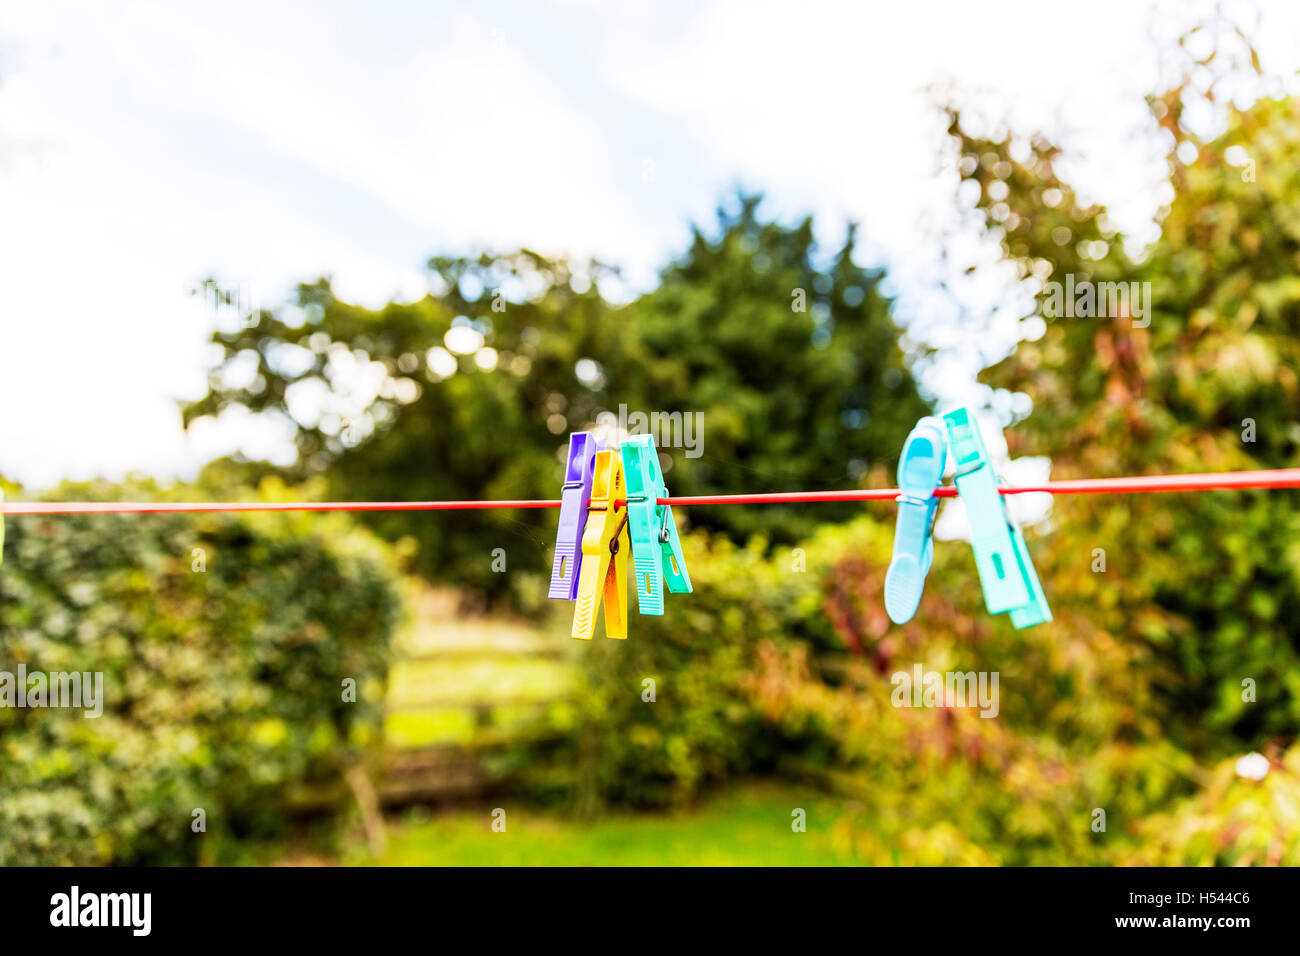 Clothes pegs on washing line clothes peg clipped to washing line for pegging clothing outside to dry air UK England - Stock Image